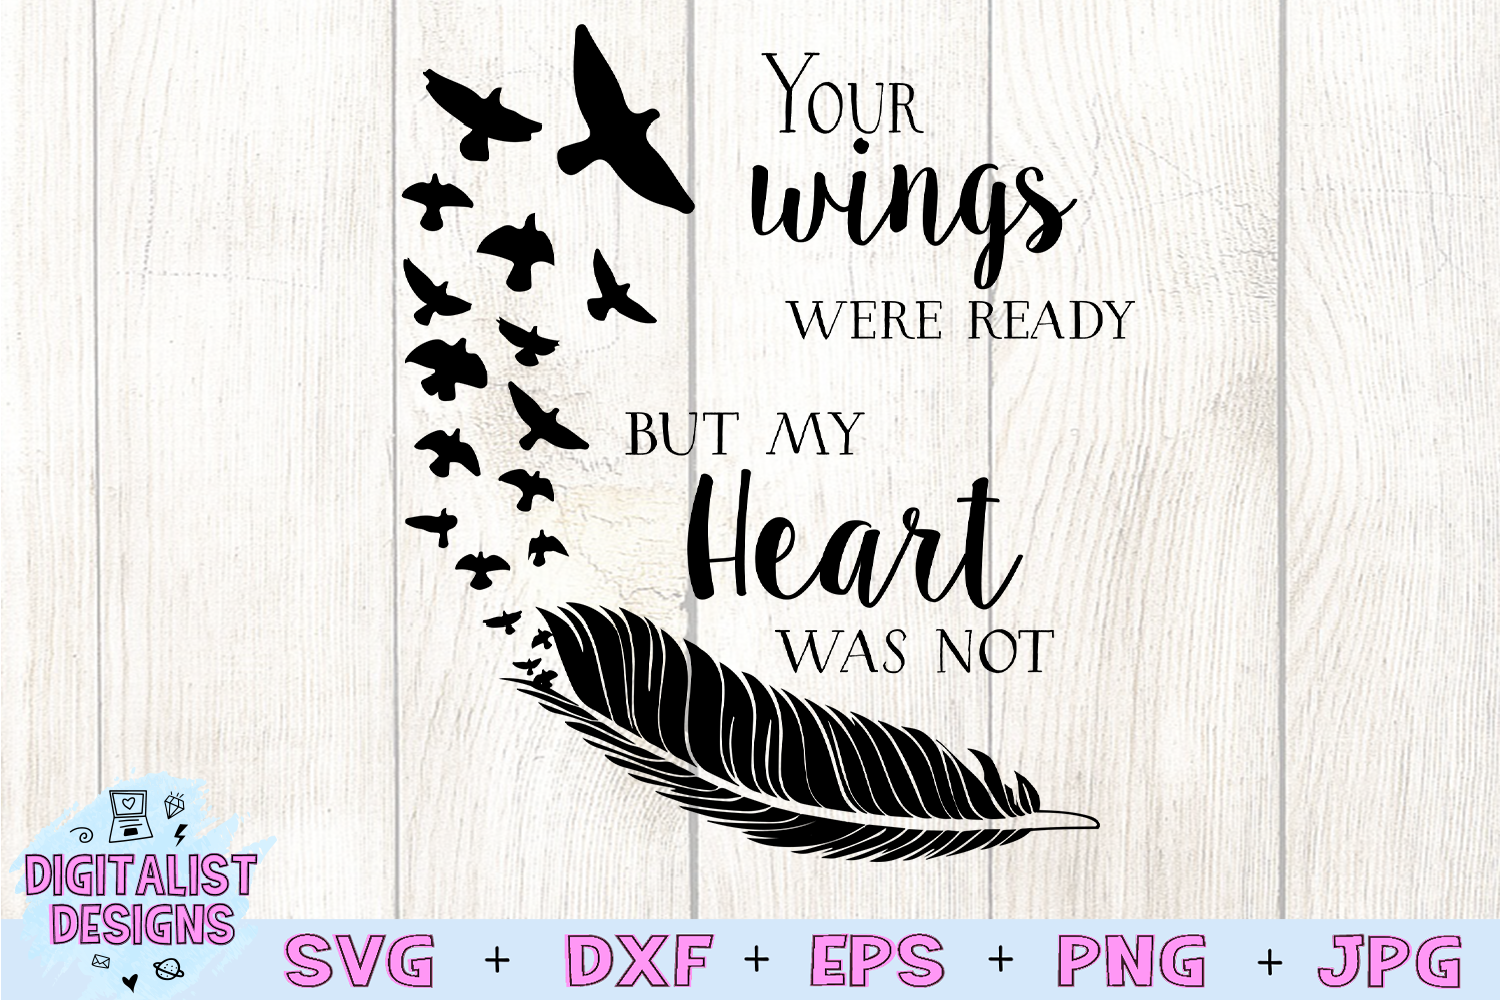 your wings were ready, my heart was not, in memory svg example image 3